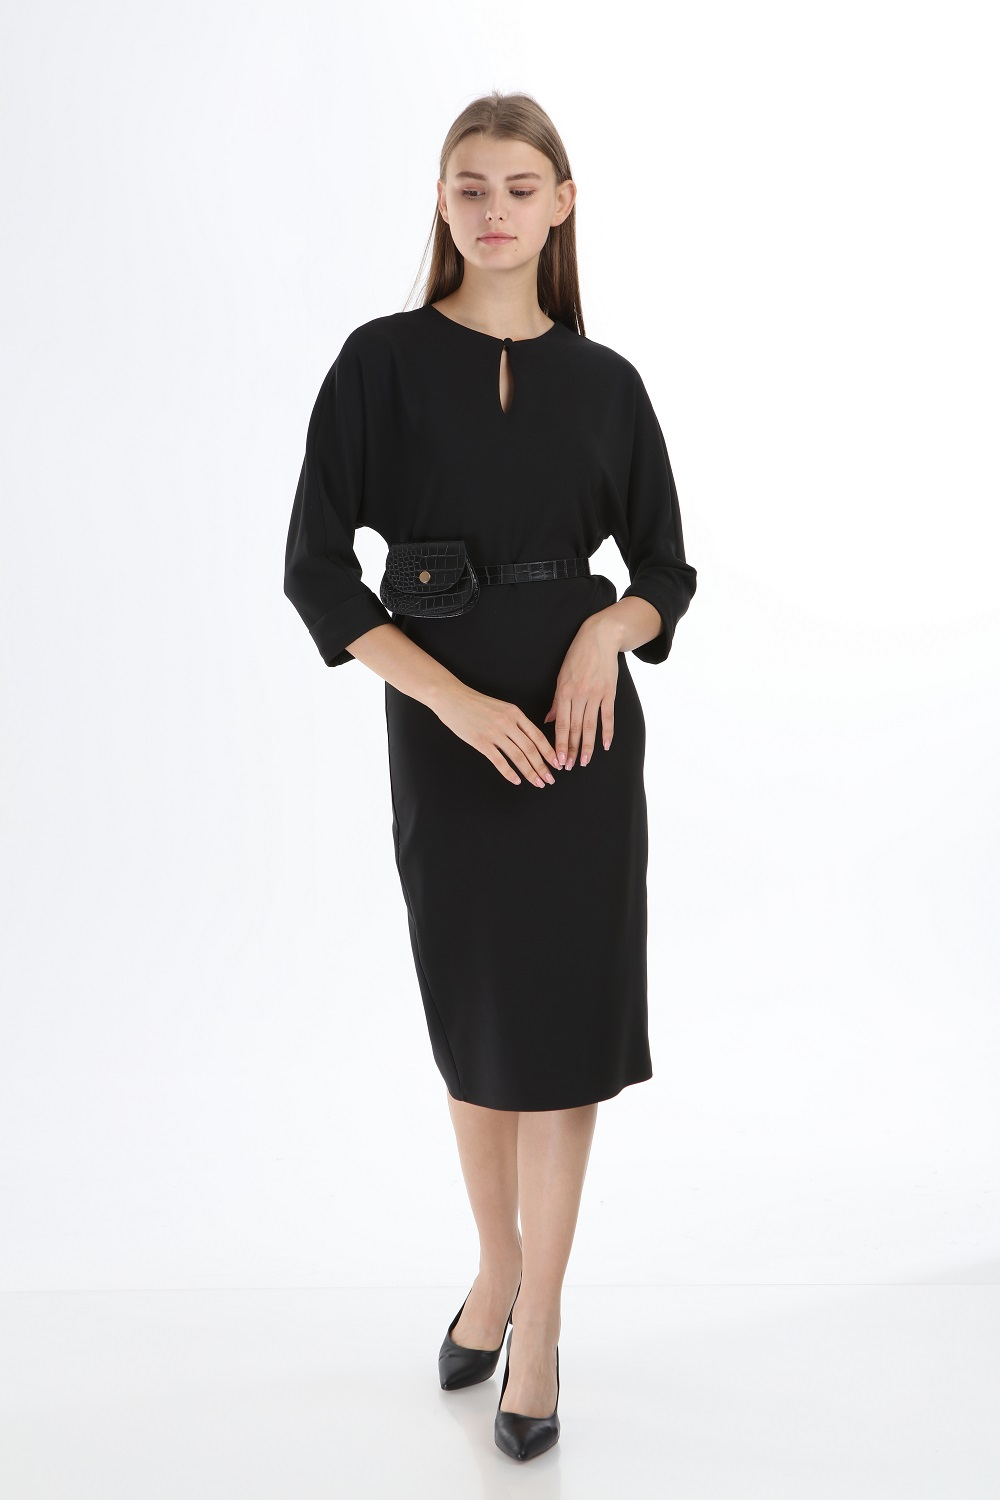 Black Colored Dress With Bag and Belt